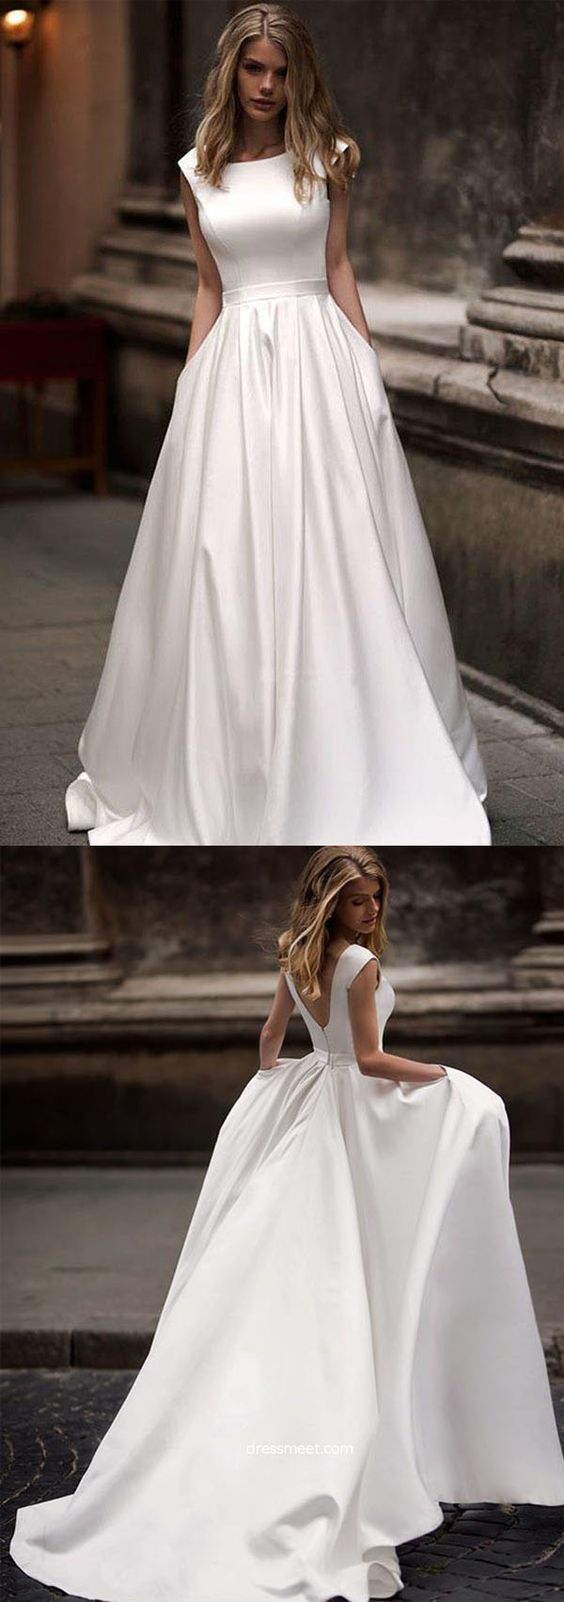 Vintage A-line Princess Ivory Satin Long Wedding Dresses with Pockets by RosyPro – Trends Ideen